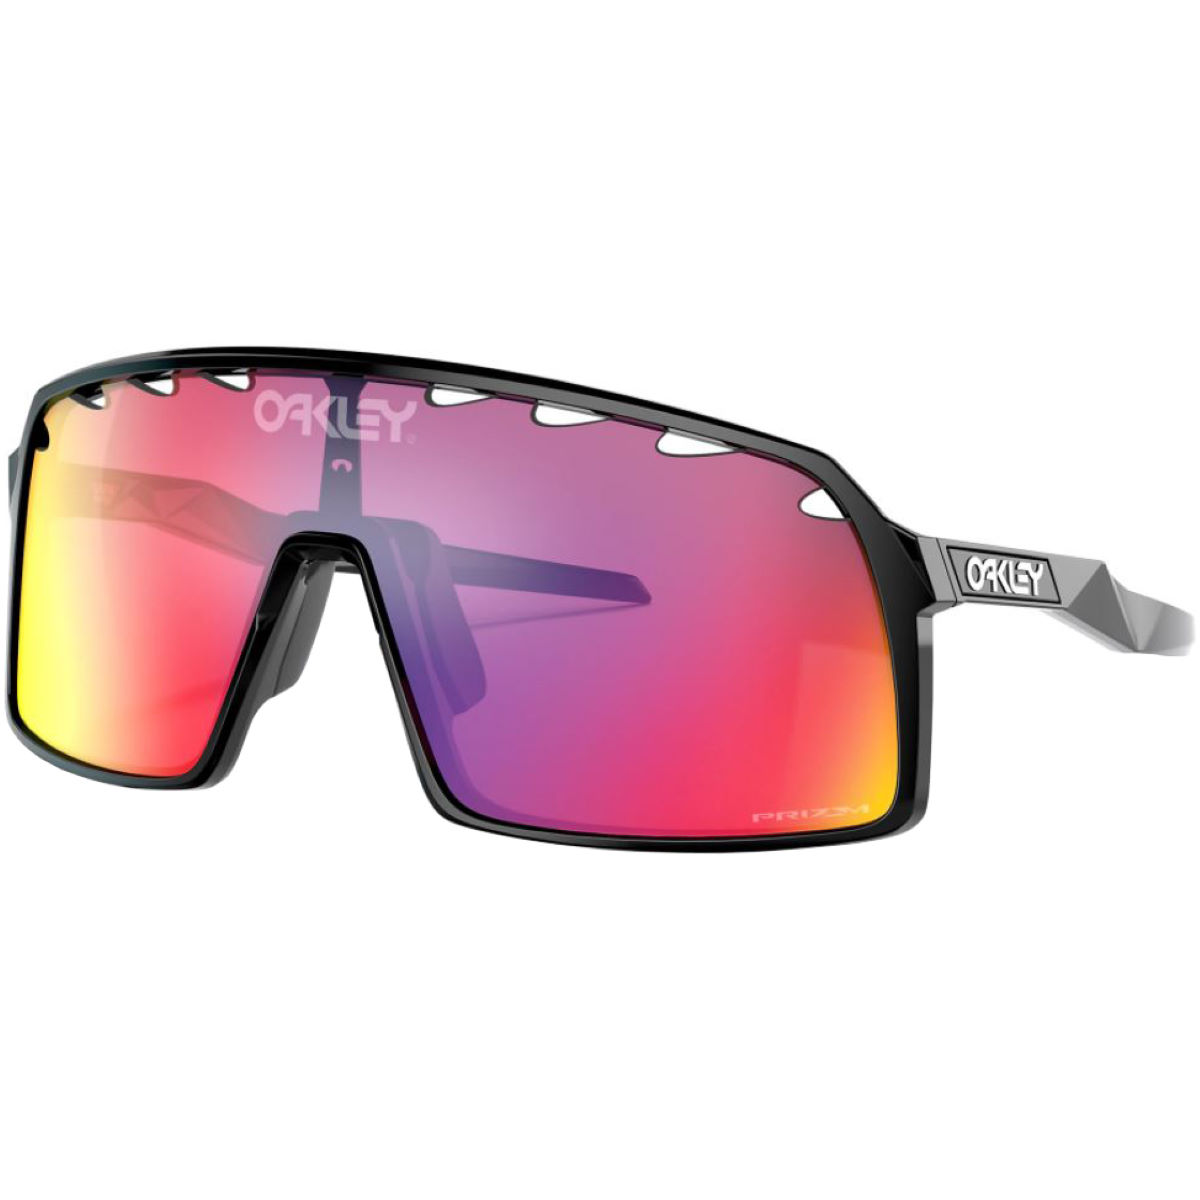 Oakley Sutro Polished Black Prizm Road Sunglasses - One Size